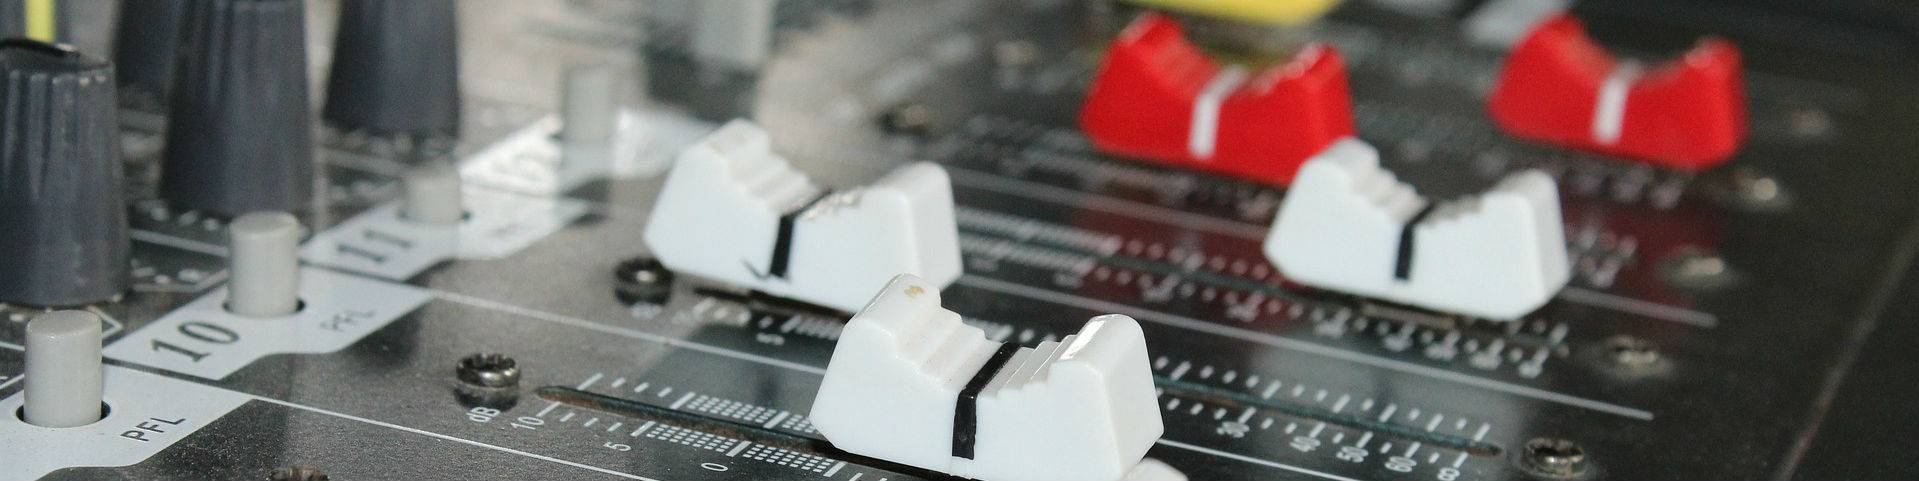 Faders on an analogue desk using for audio summing